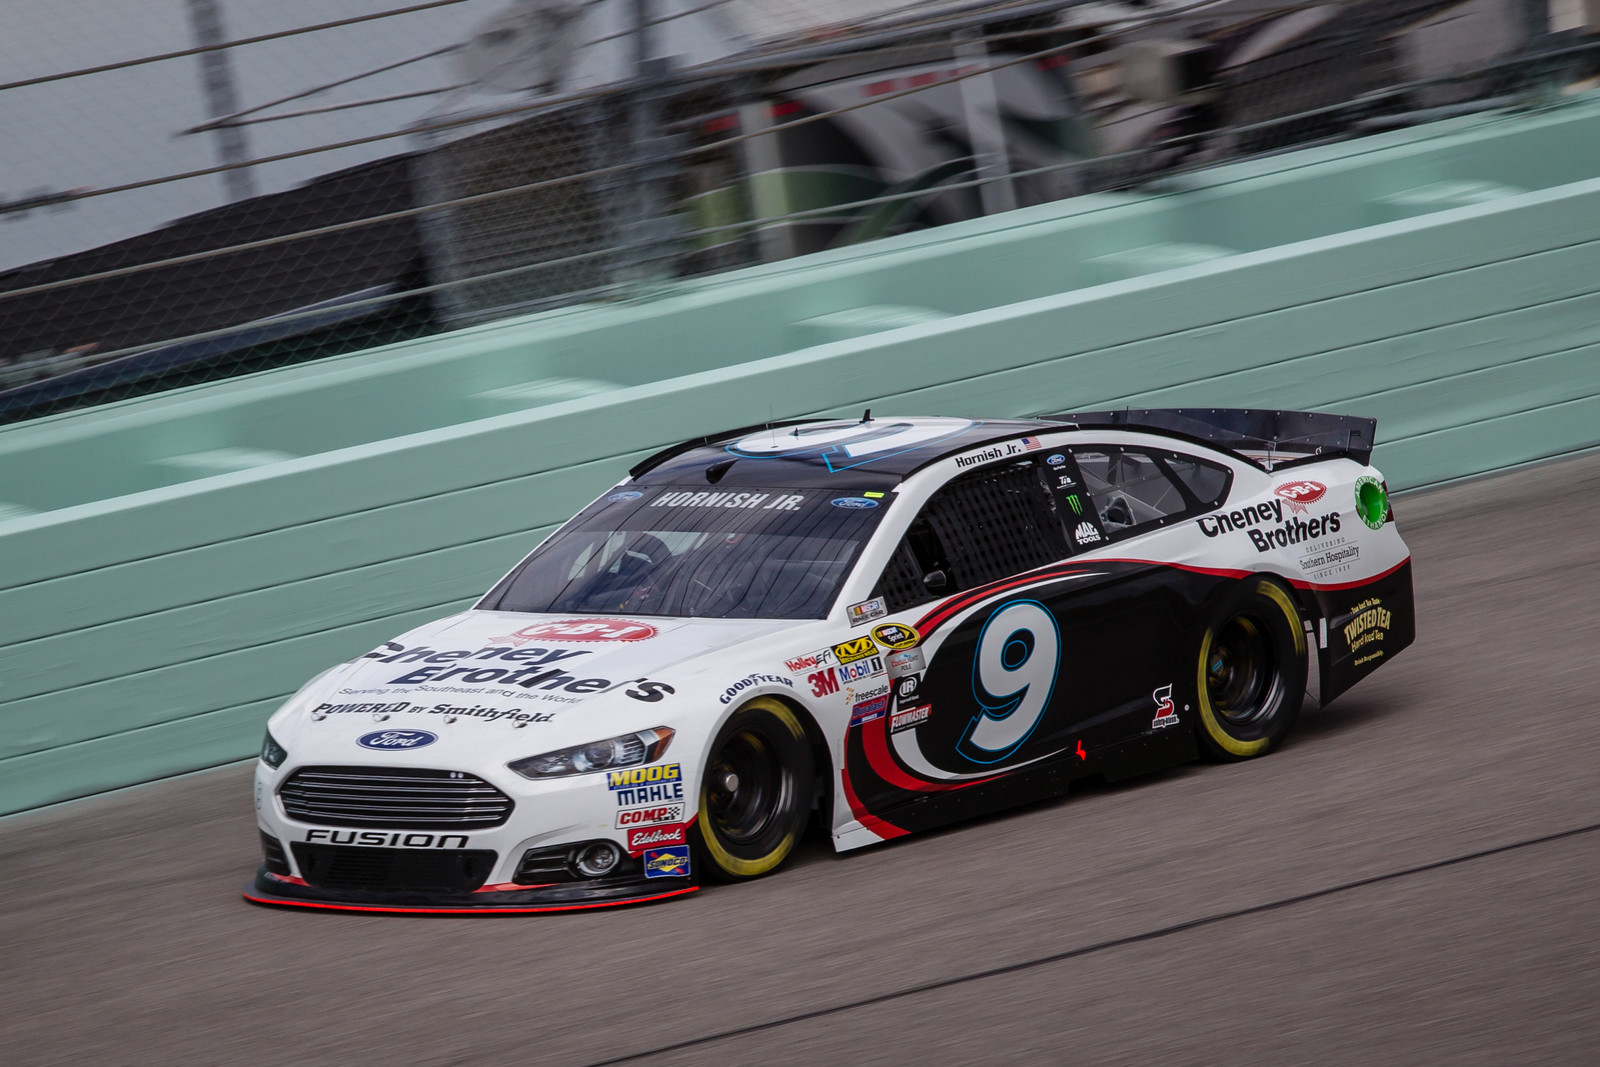 NASCAR Sprint Cup driver Sam Hornish Jr. pilots the #9 Cheney Brothers Ford Fusion during the Ford 400 at Homestead-Miami Speedway on November 22nd, 2015